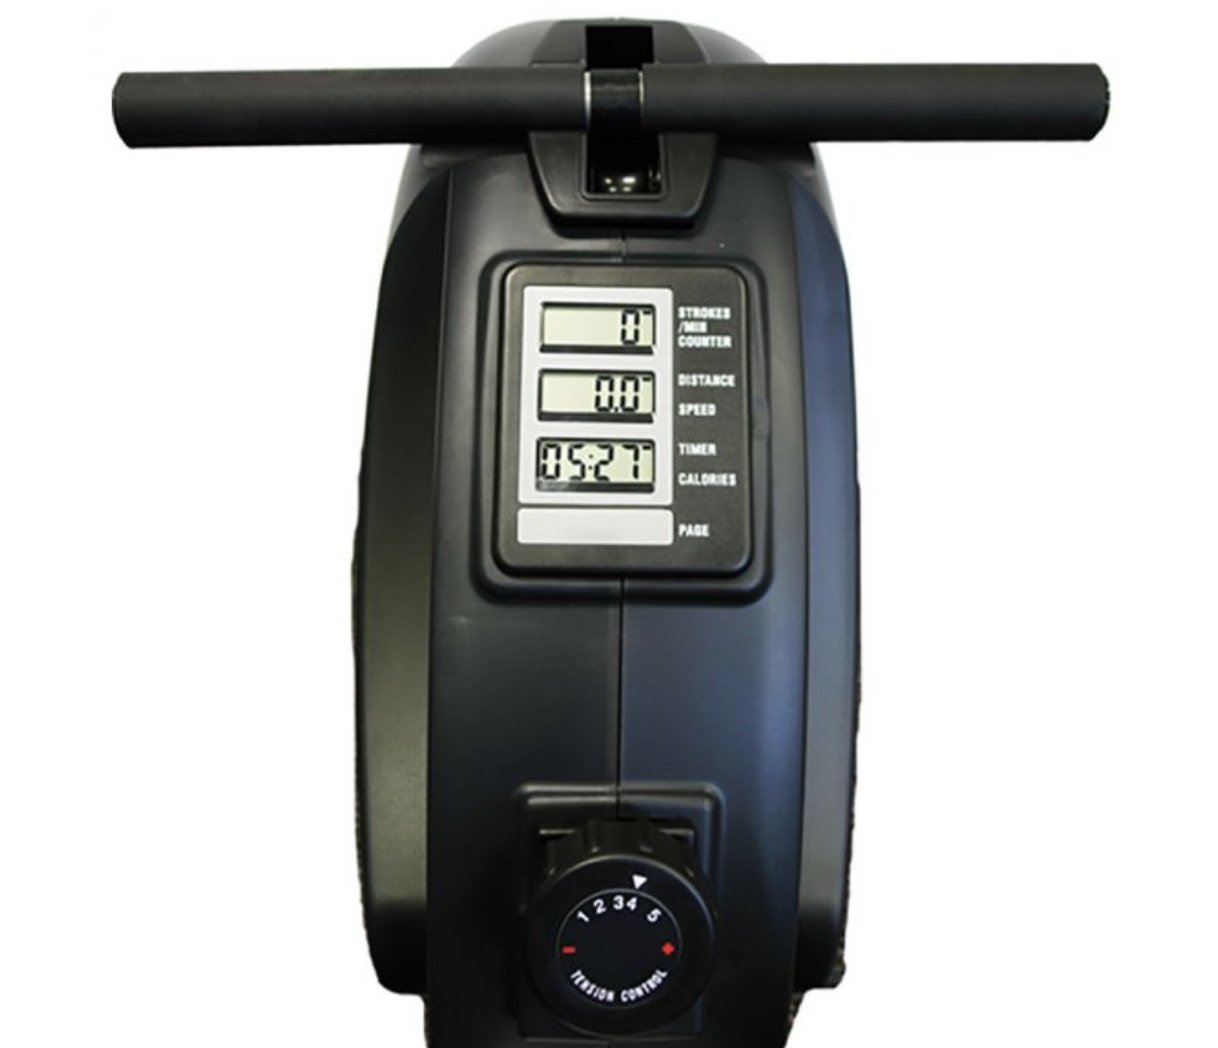 LifeSpan RW1000 Rowing Machine Monitor